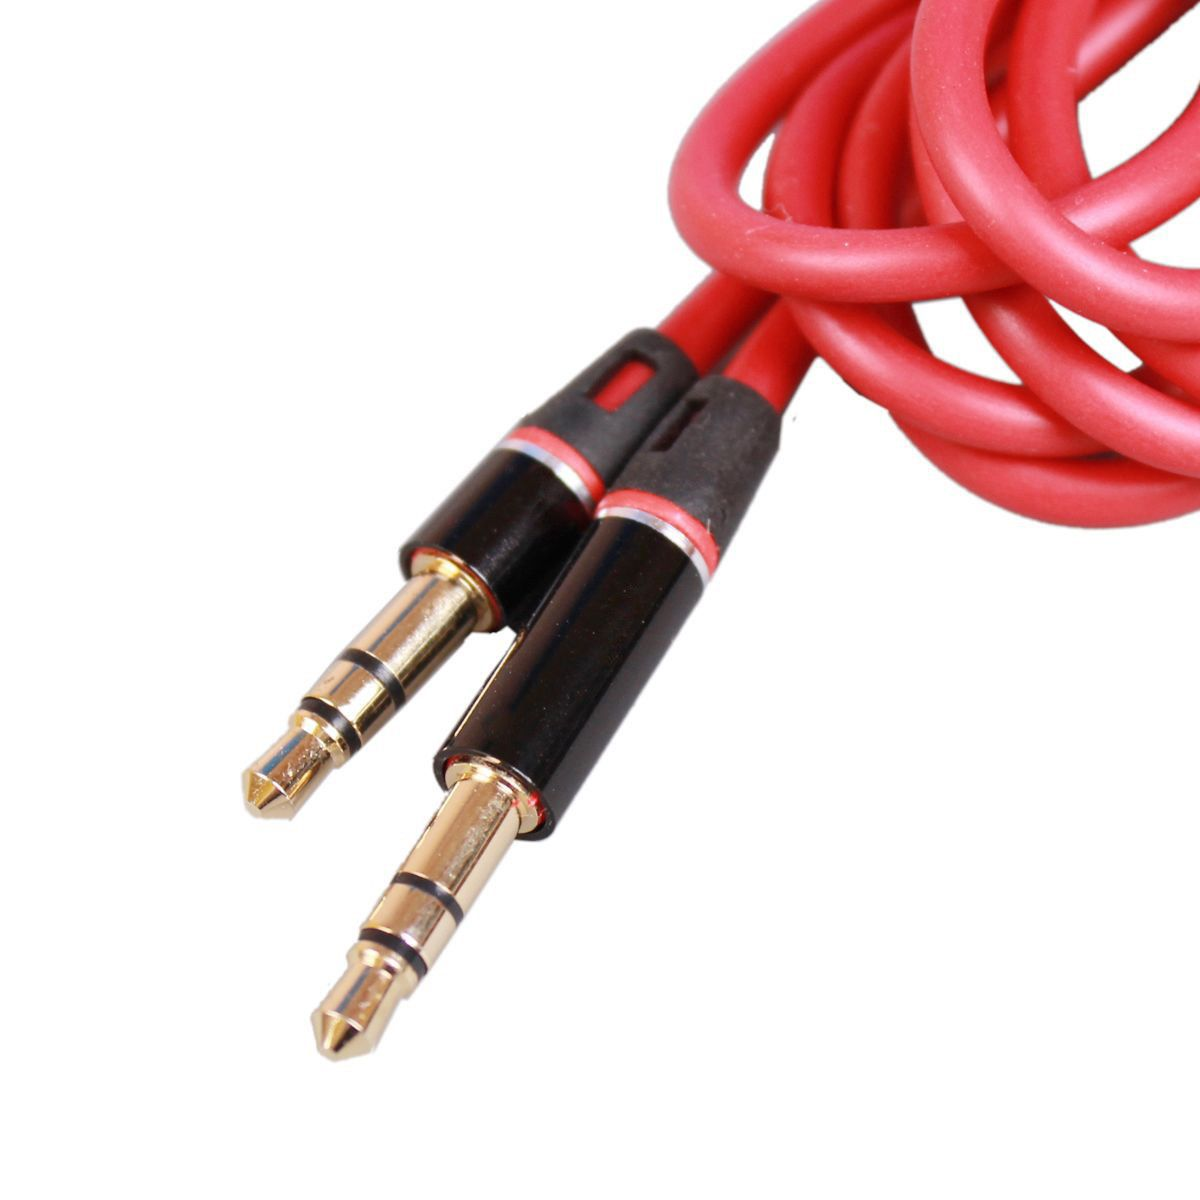 3.5mm Audio Cable AUX Cord For JBL Micro Charge 2 Sound Fly BT ...